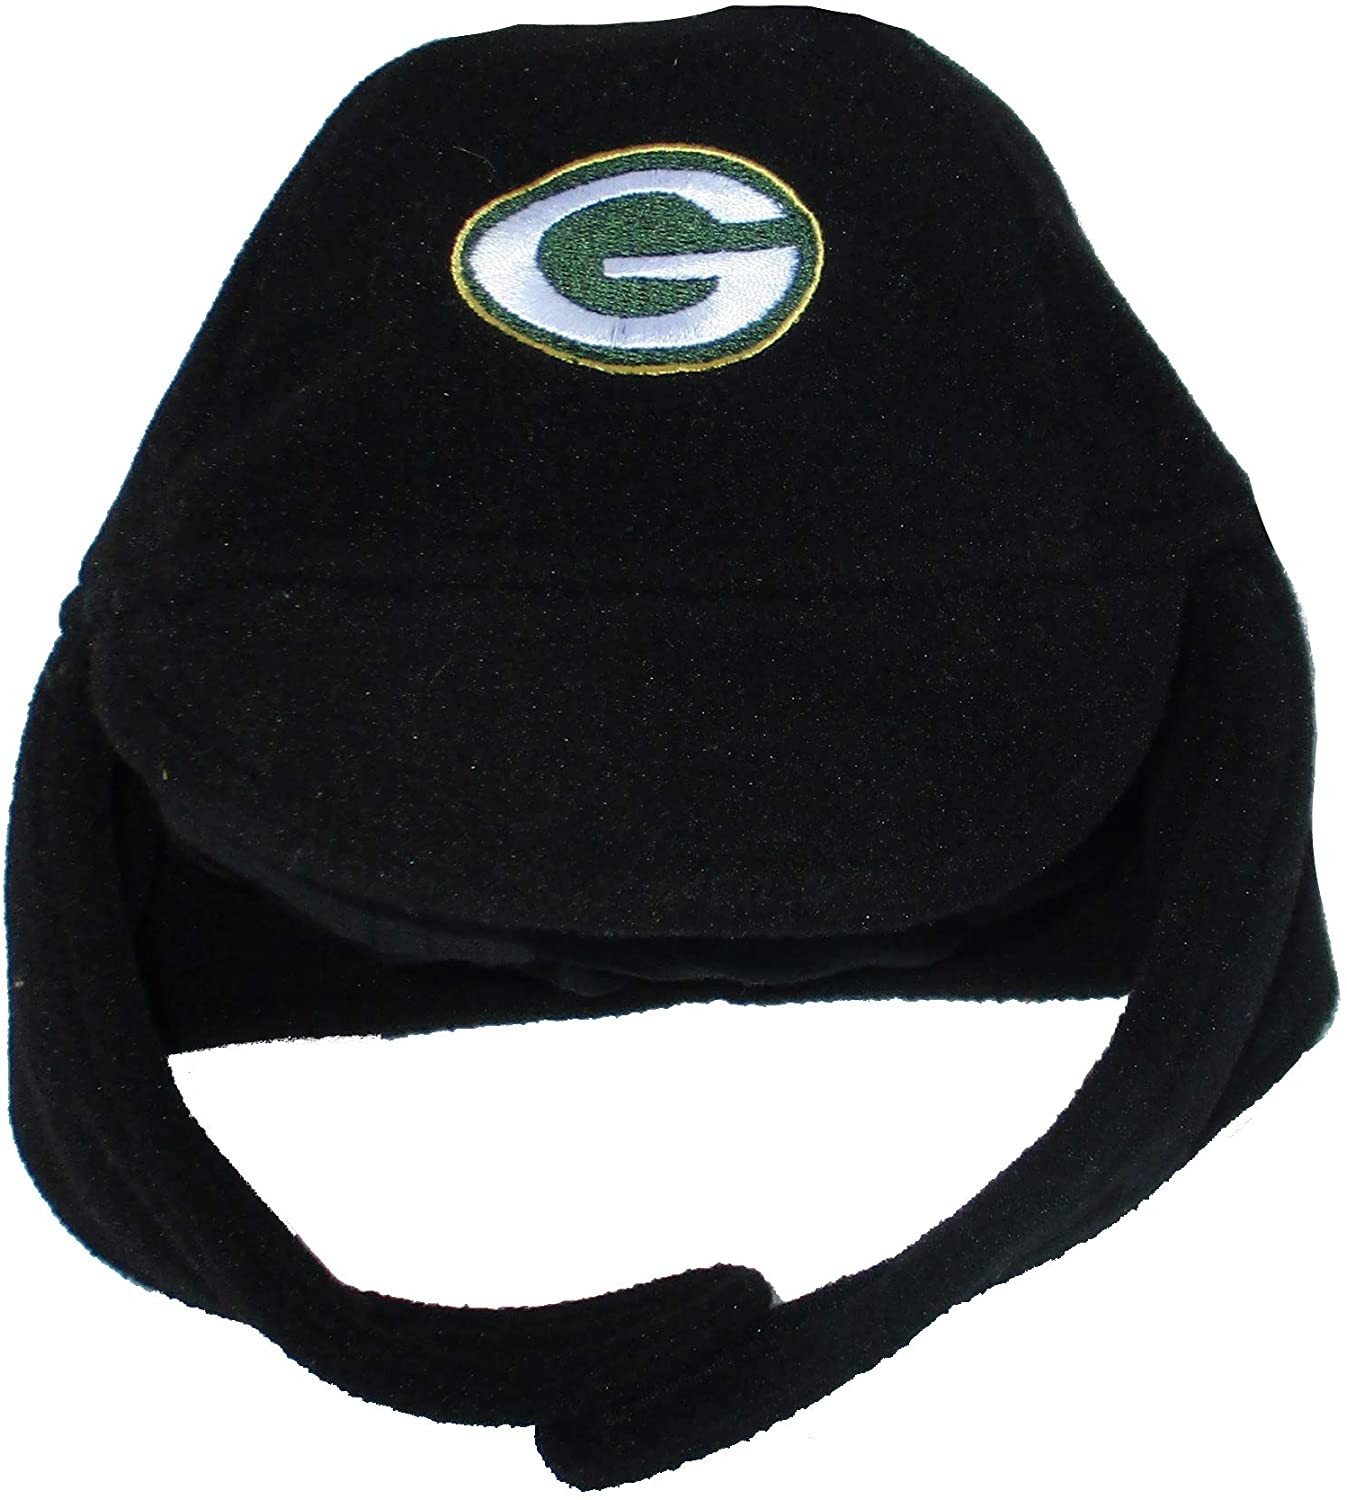 AMERICAN NEEDLE Green Bay Packers Toddler Knit Beanie Hat Cap Boys and Girls